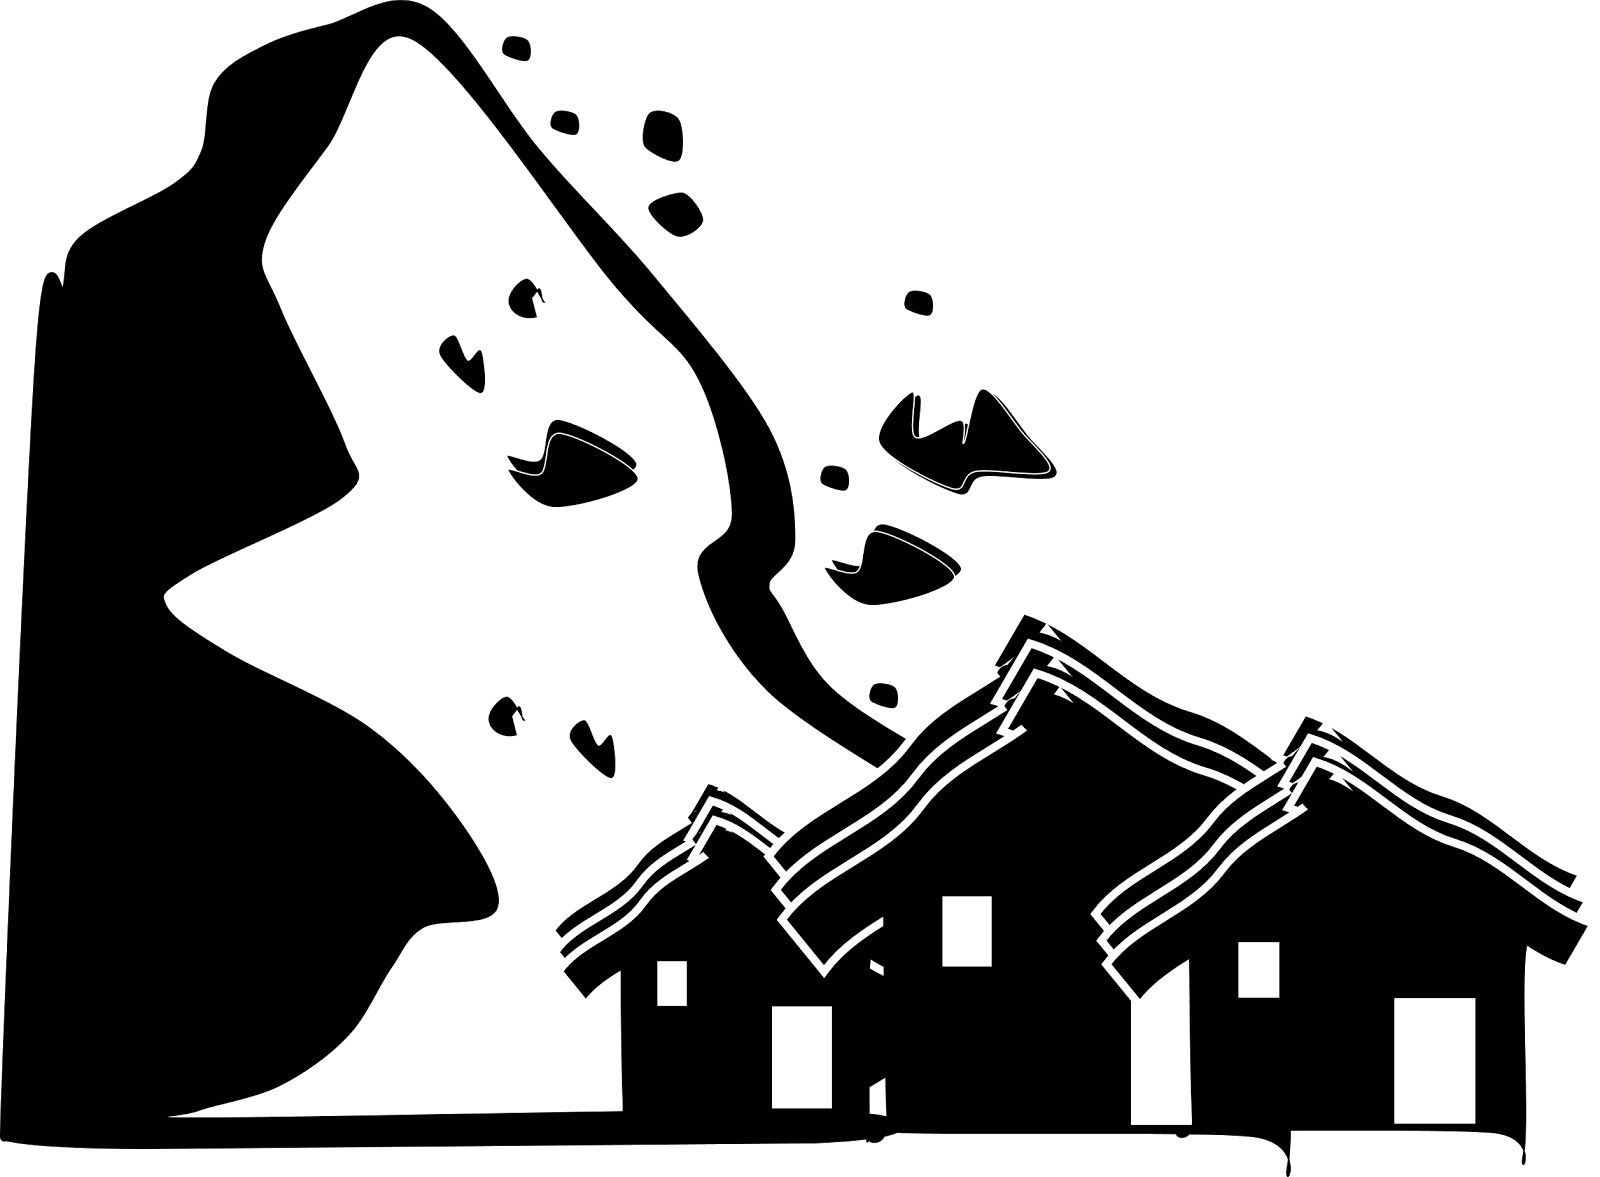 Earthquake clipart collapsed building.  collection of black